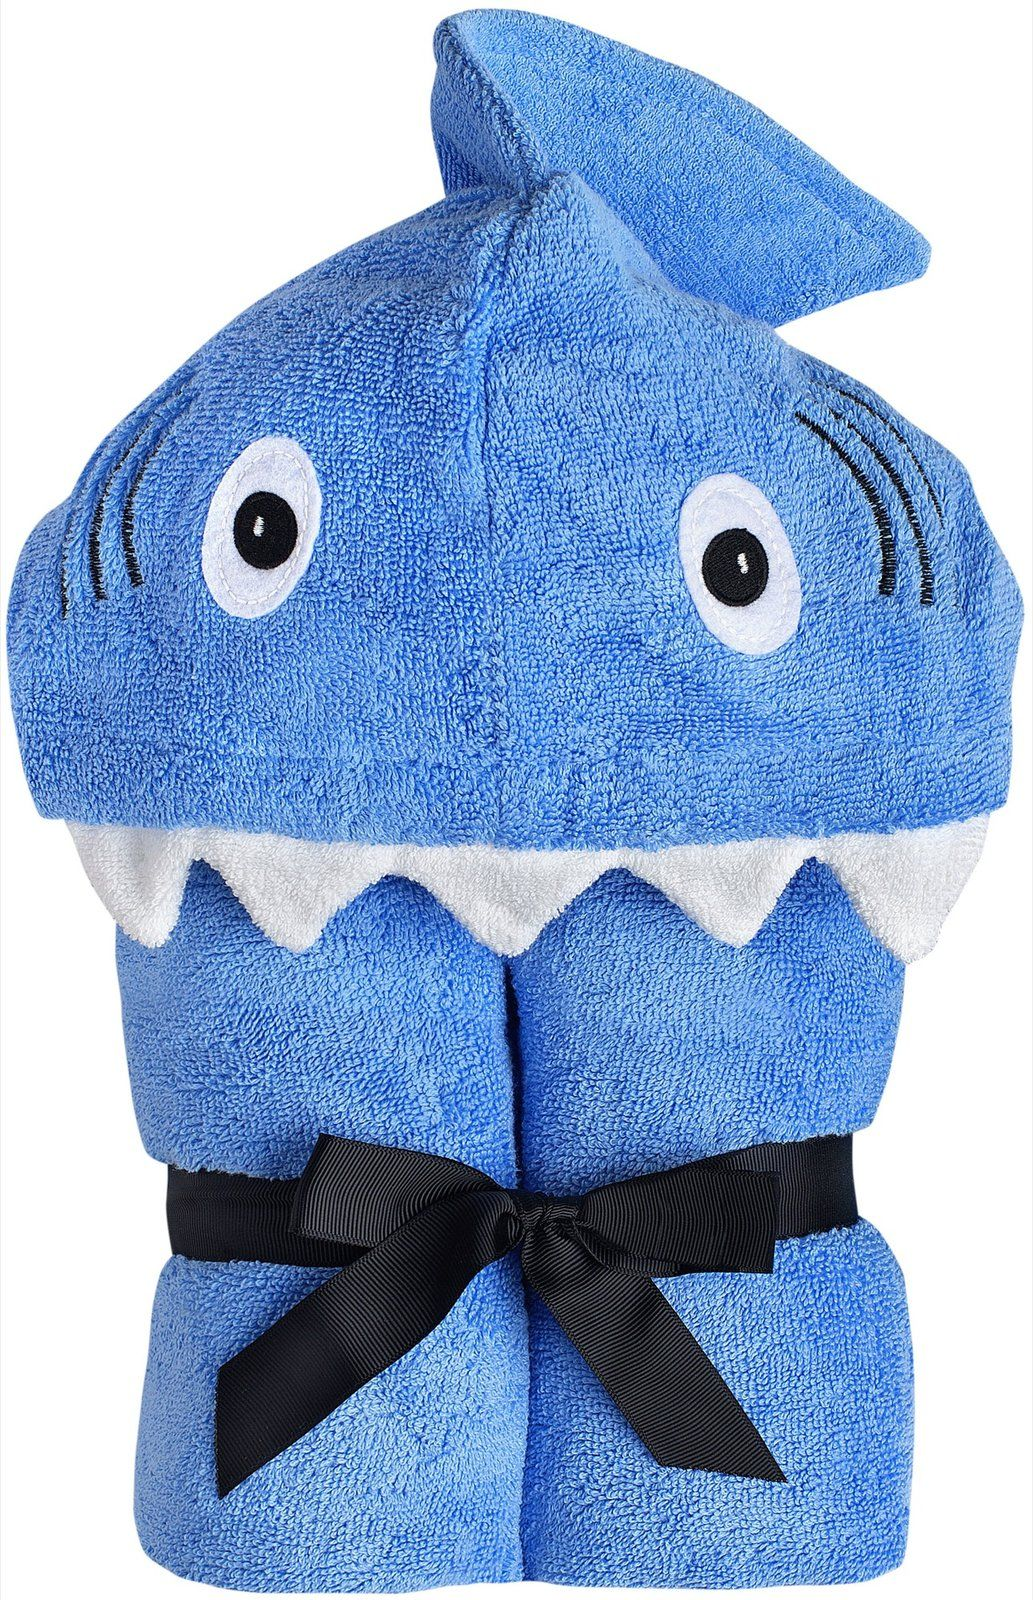 Yikes Twins Child Hooded Towel - Blue Shark - Free Shipping | So Sew ...